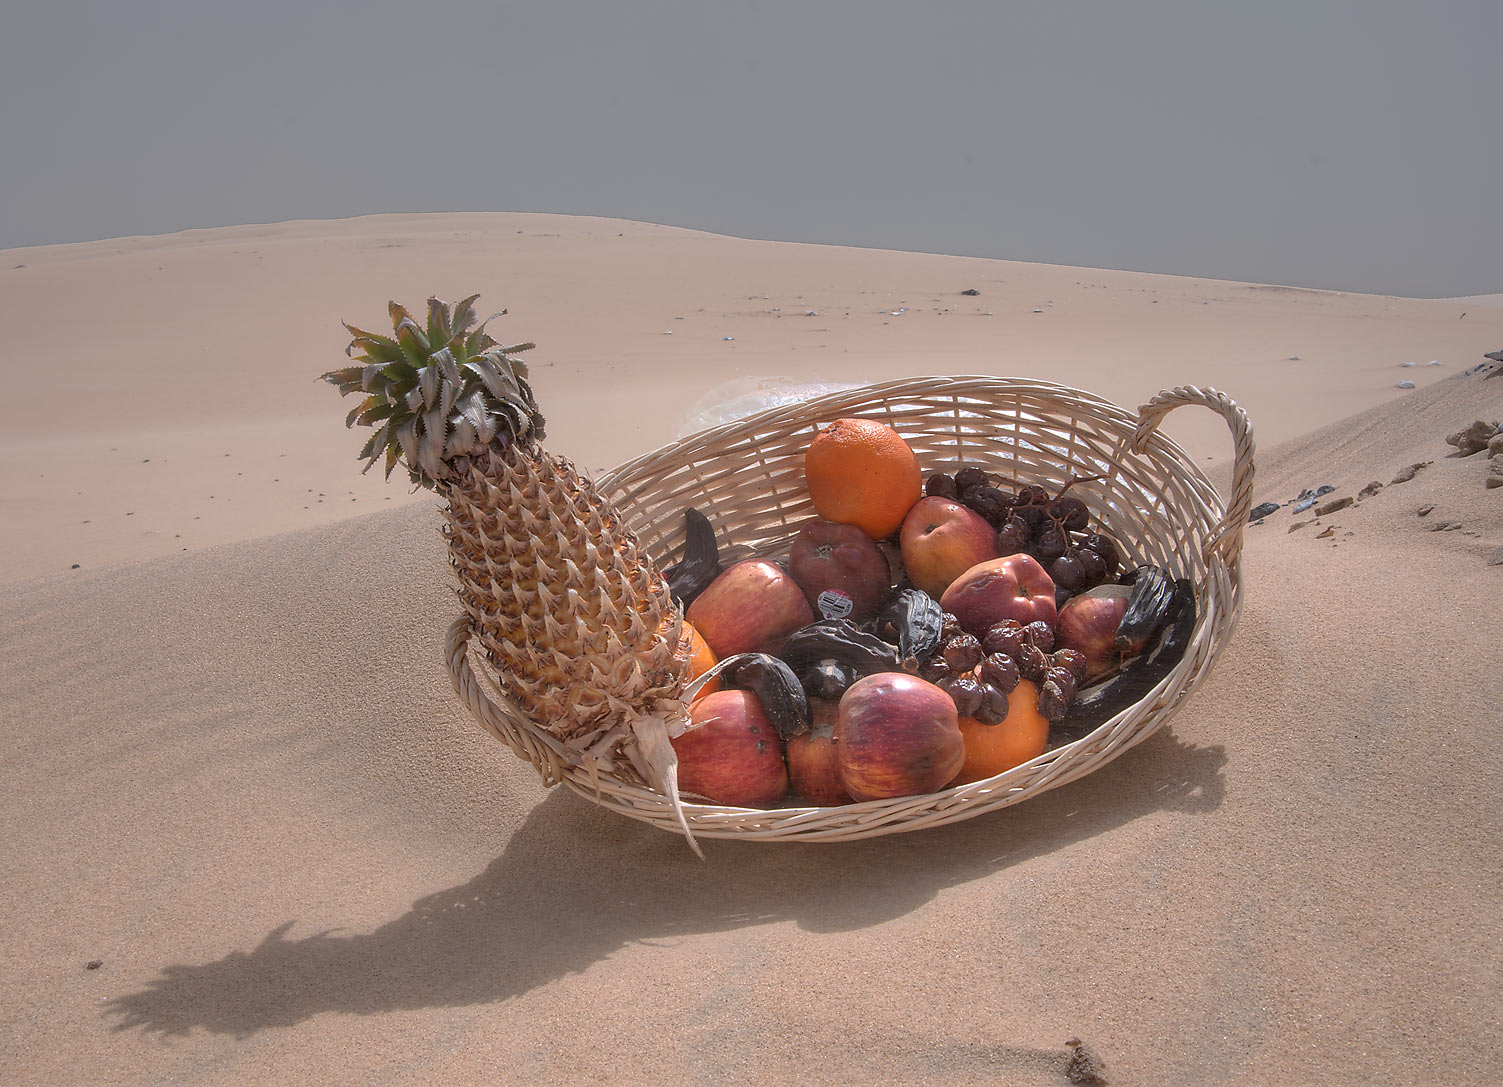 Remains of a lunch left on Singing Sand Dunes near Mesaieed. Qatar